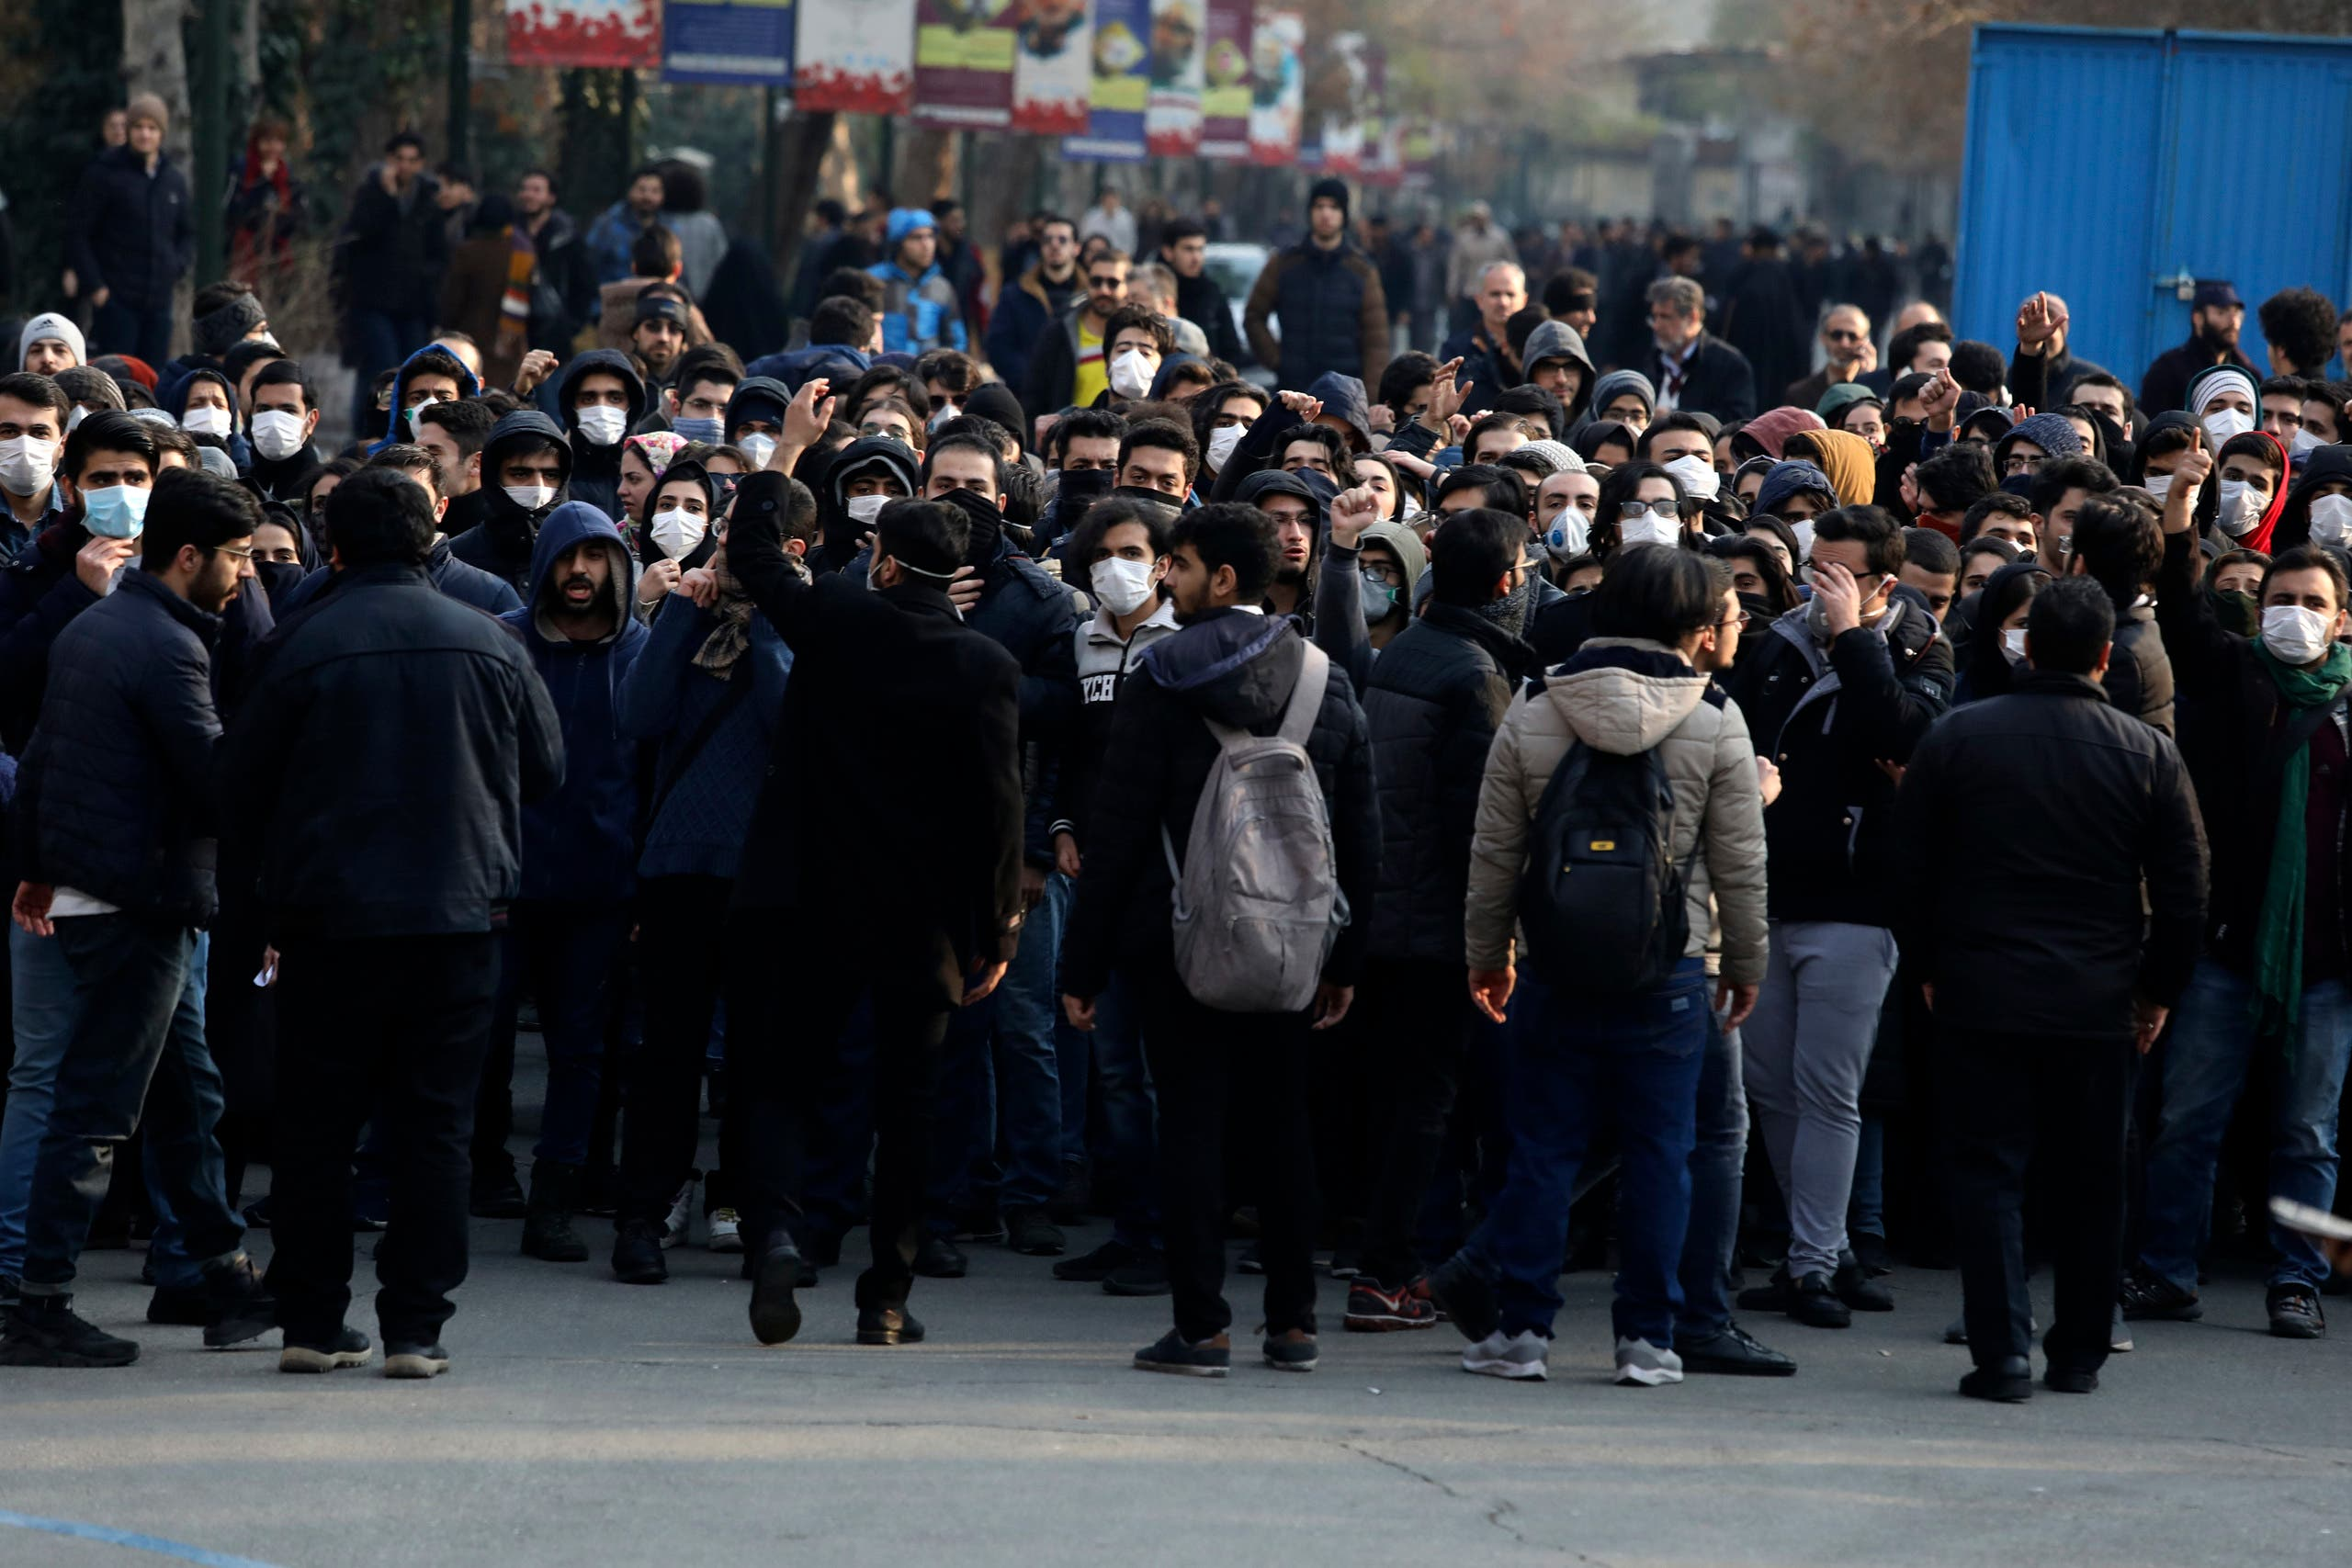 Anti-government protesters attend a demonstration blaming the government for the delayed announcement of the downing of a Ukrainian plane, in Tehran on Jan. 14, 2020. (File photo: AP)